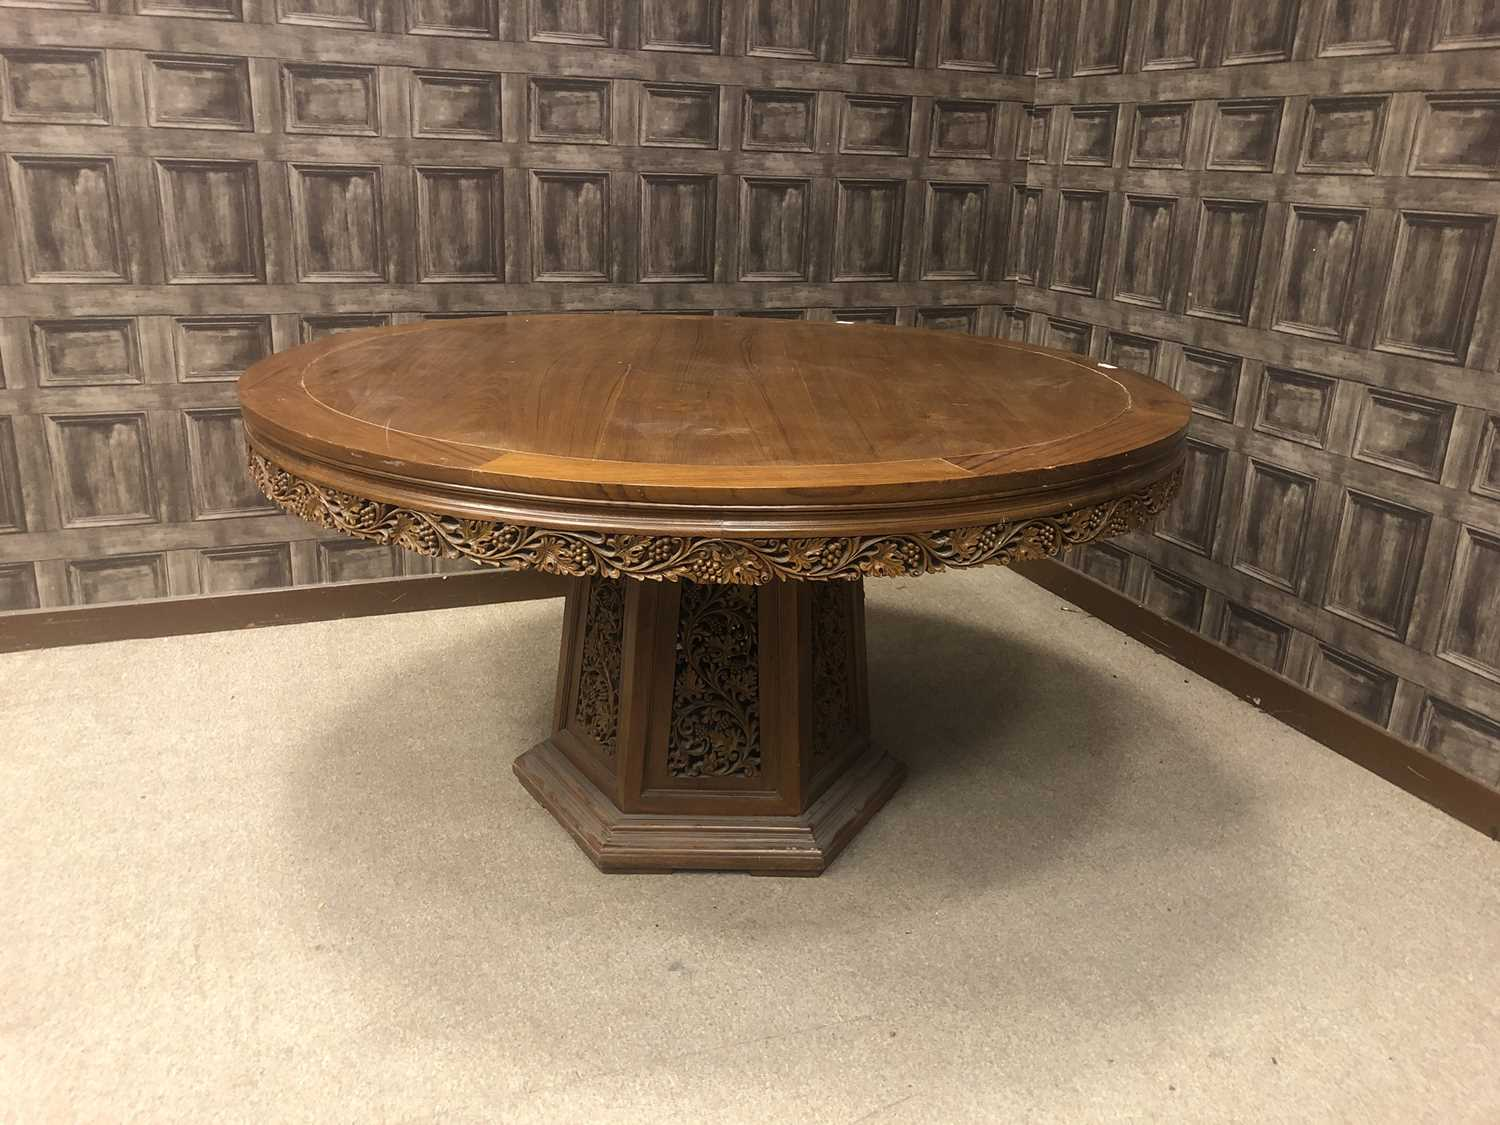 Lot 829 - A 20TH CENTURY CHINESE CIRCULAR TABLE AND EIGHT CHAIRS